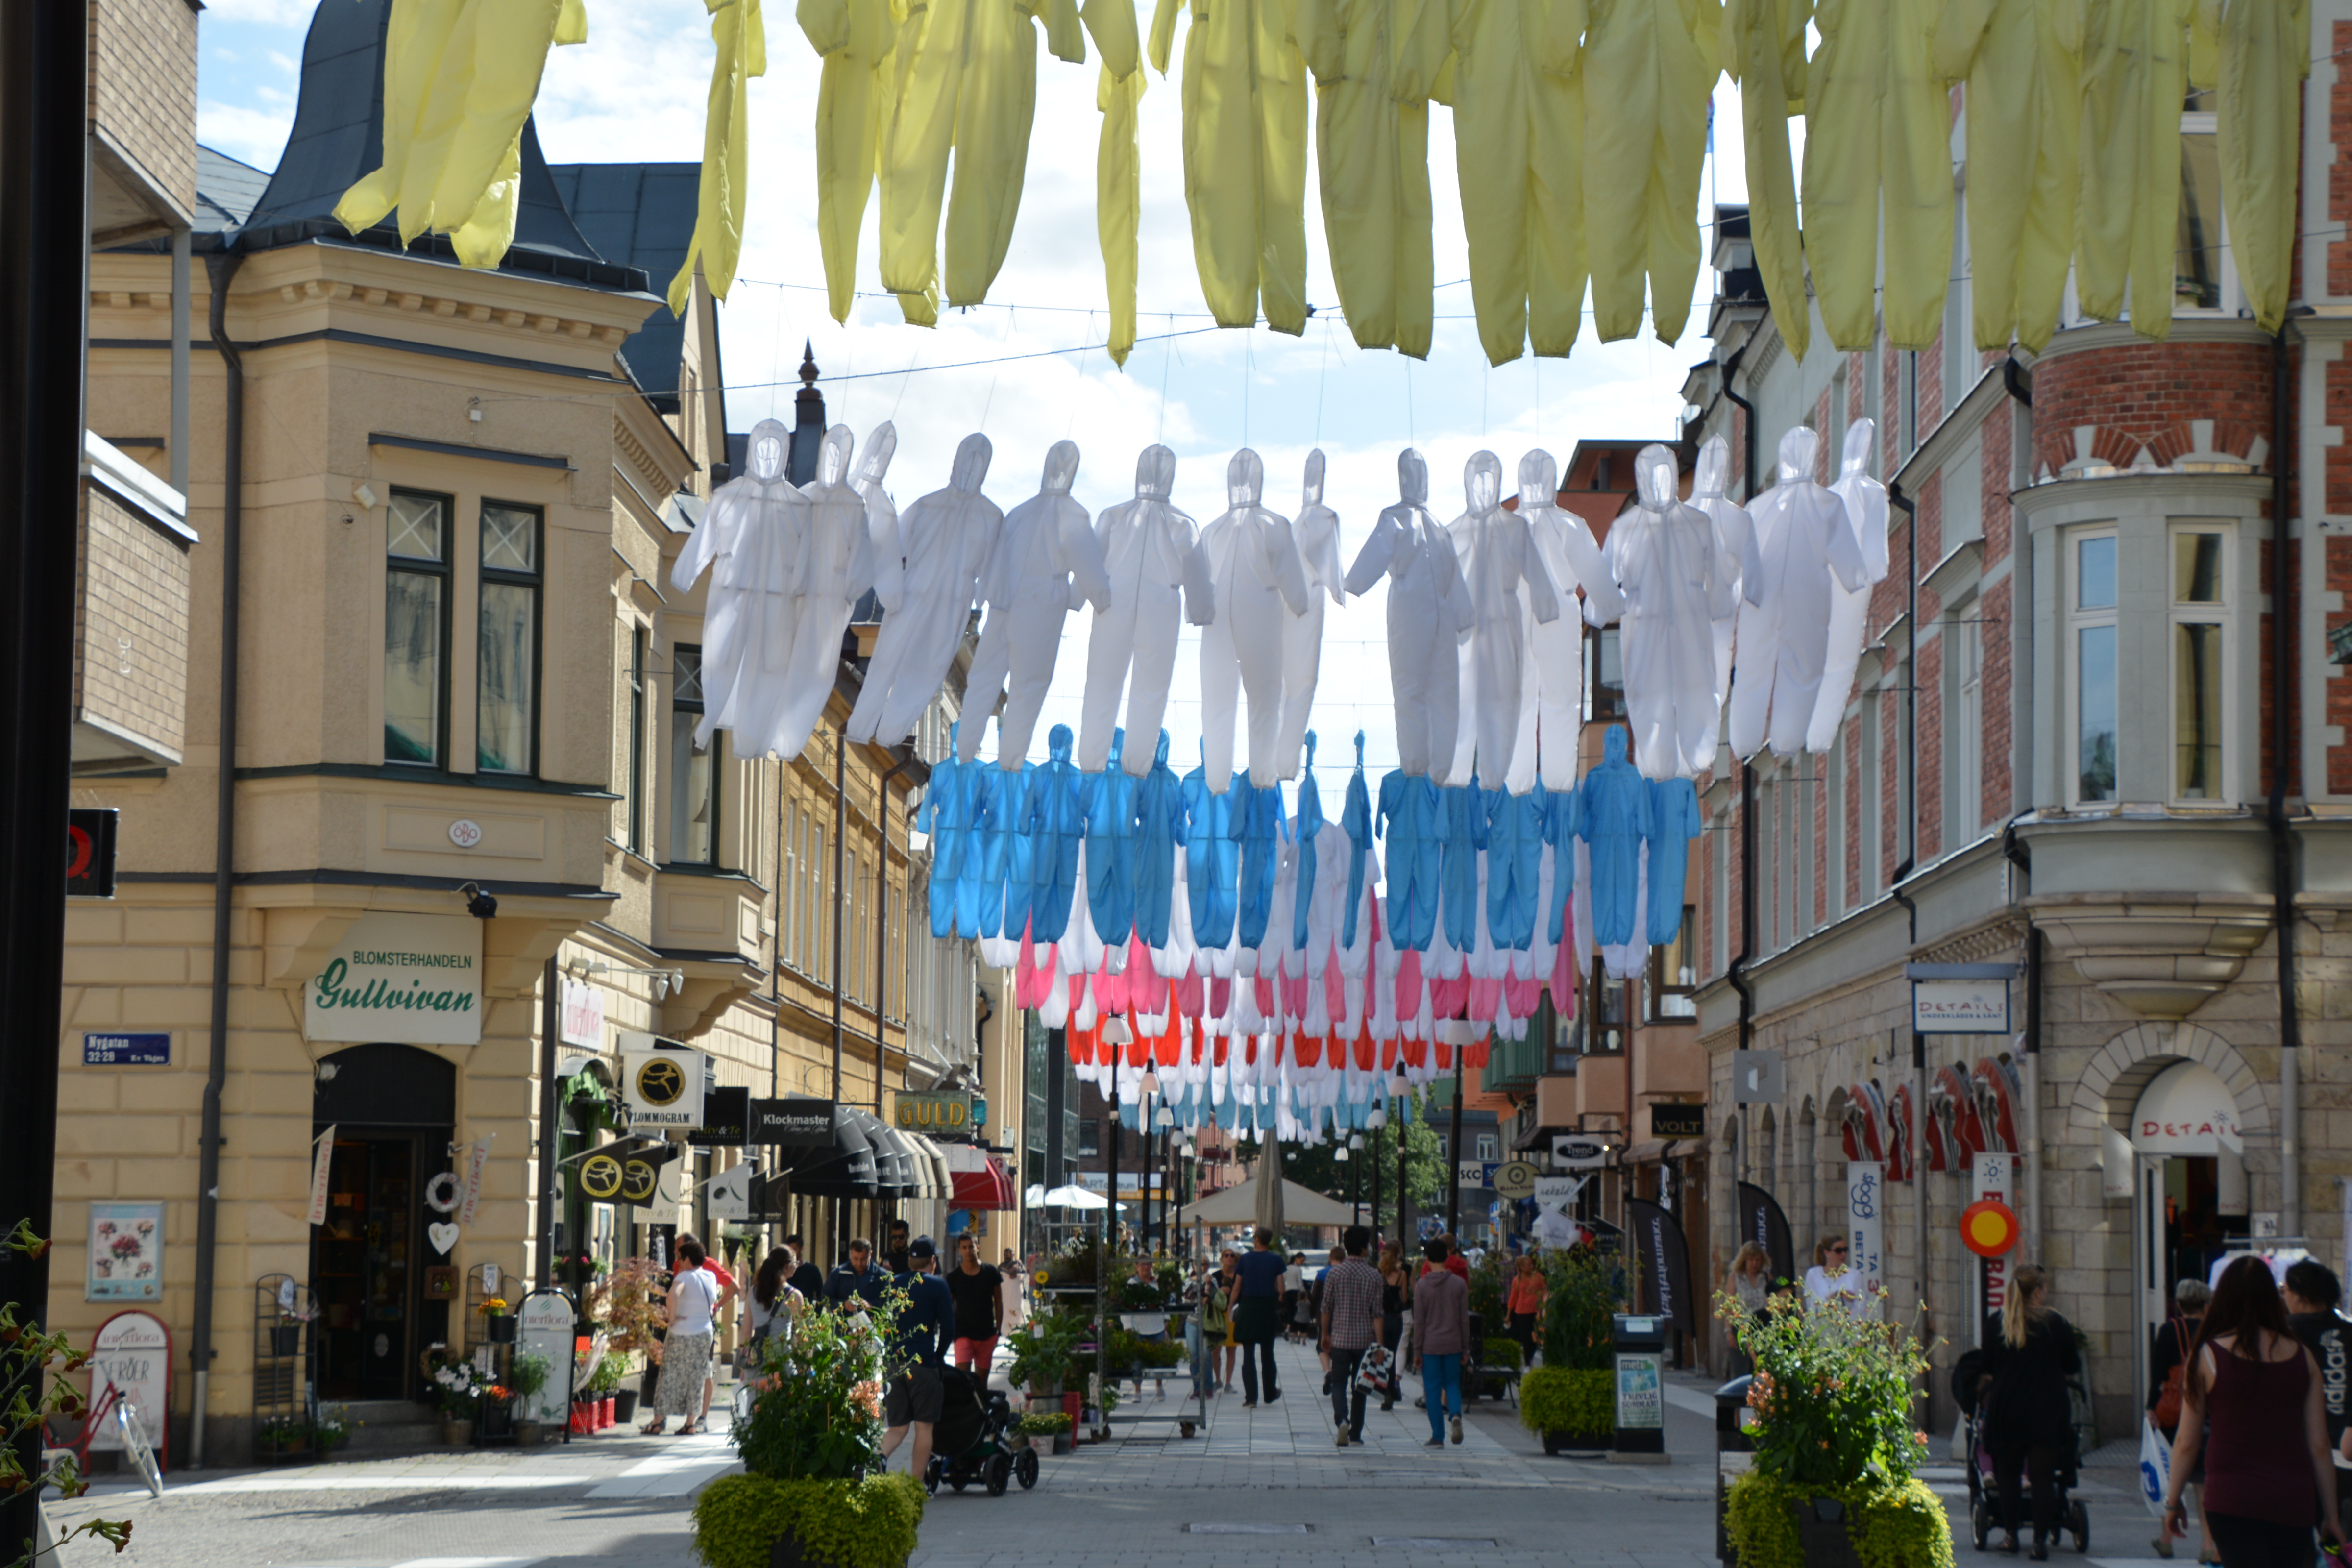 Think different (How to hang workers´ uniforms), above Köpmangatan in Örebro, at Örebro Open Art June-September, 2015. Foto: Bengt Oberger